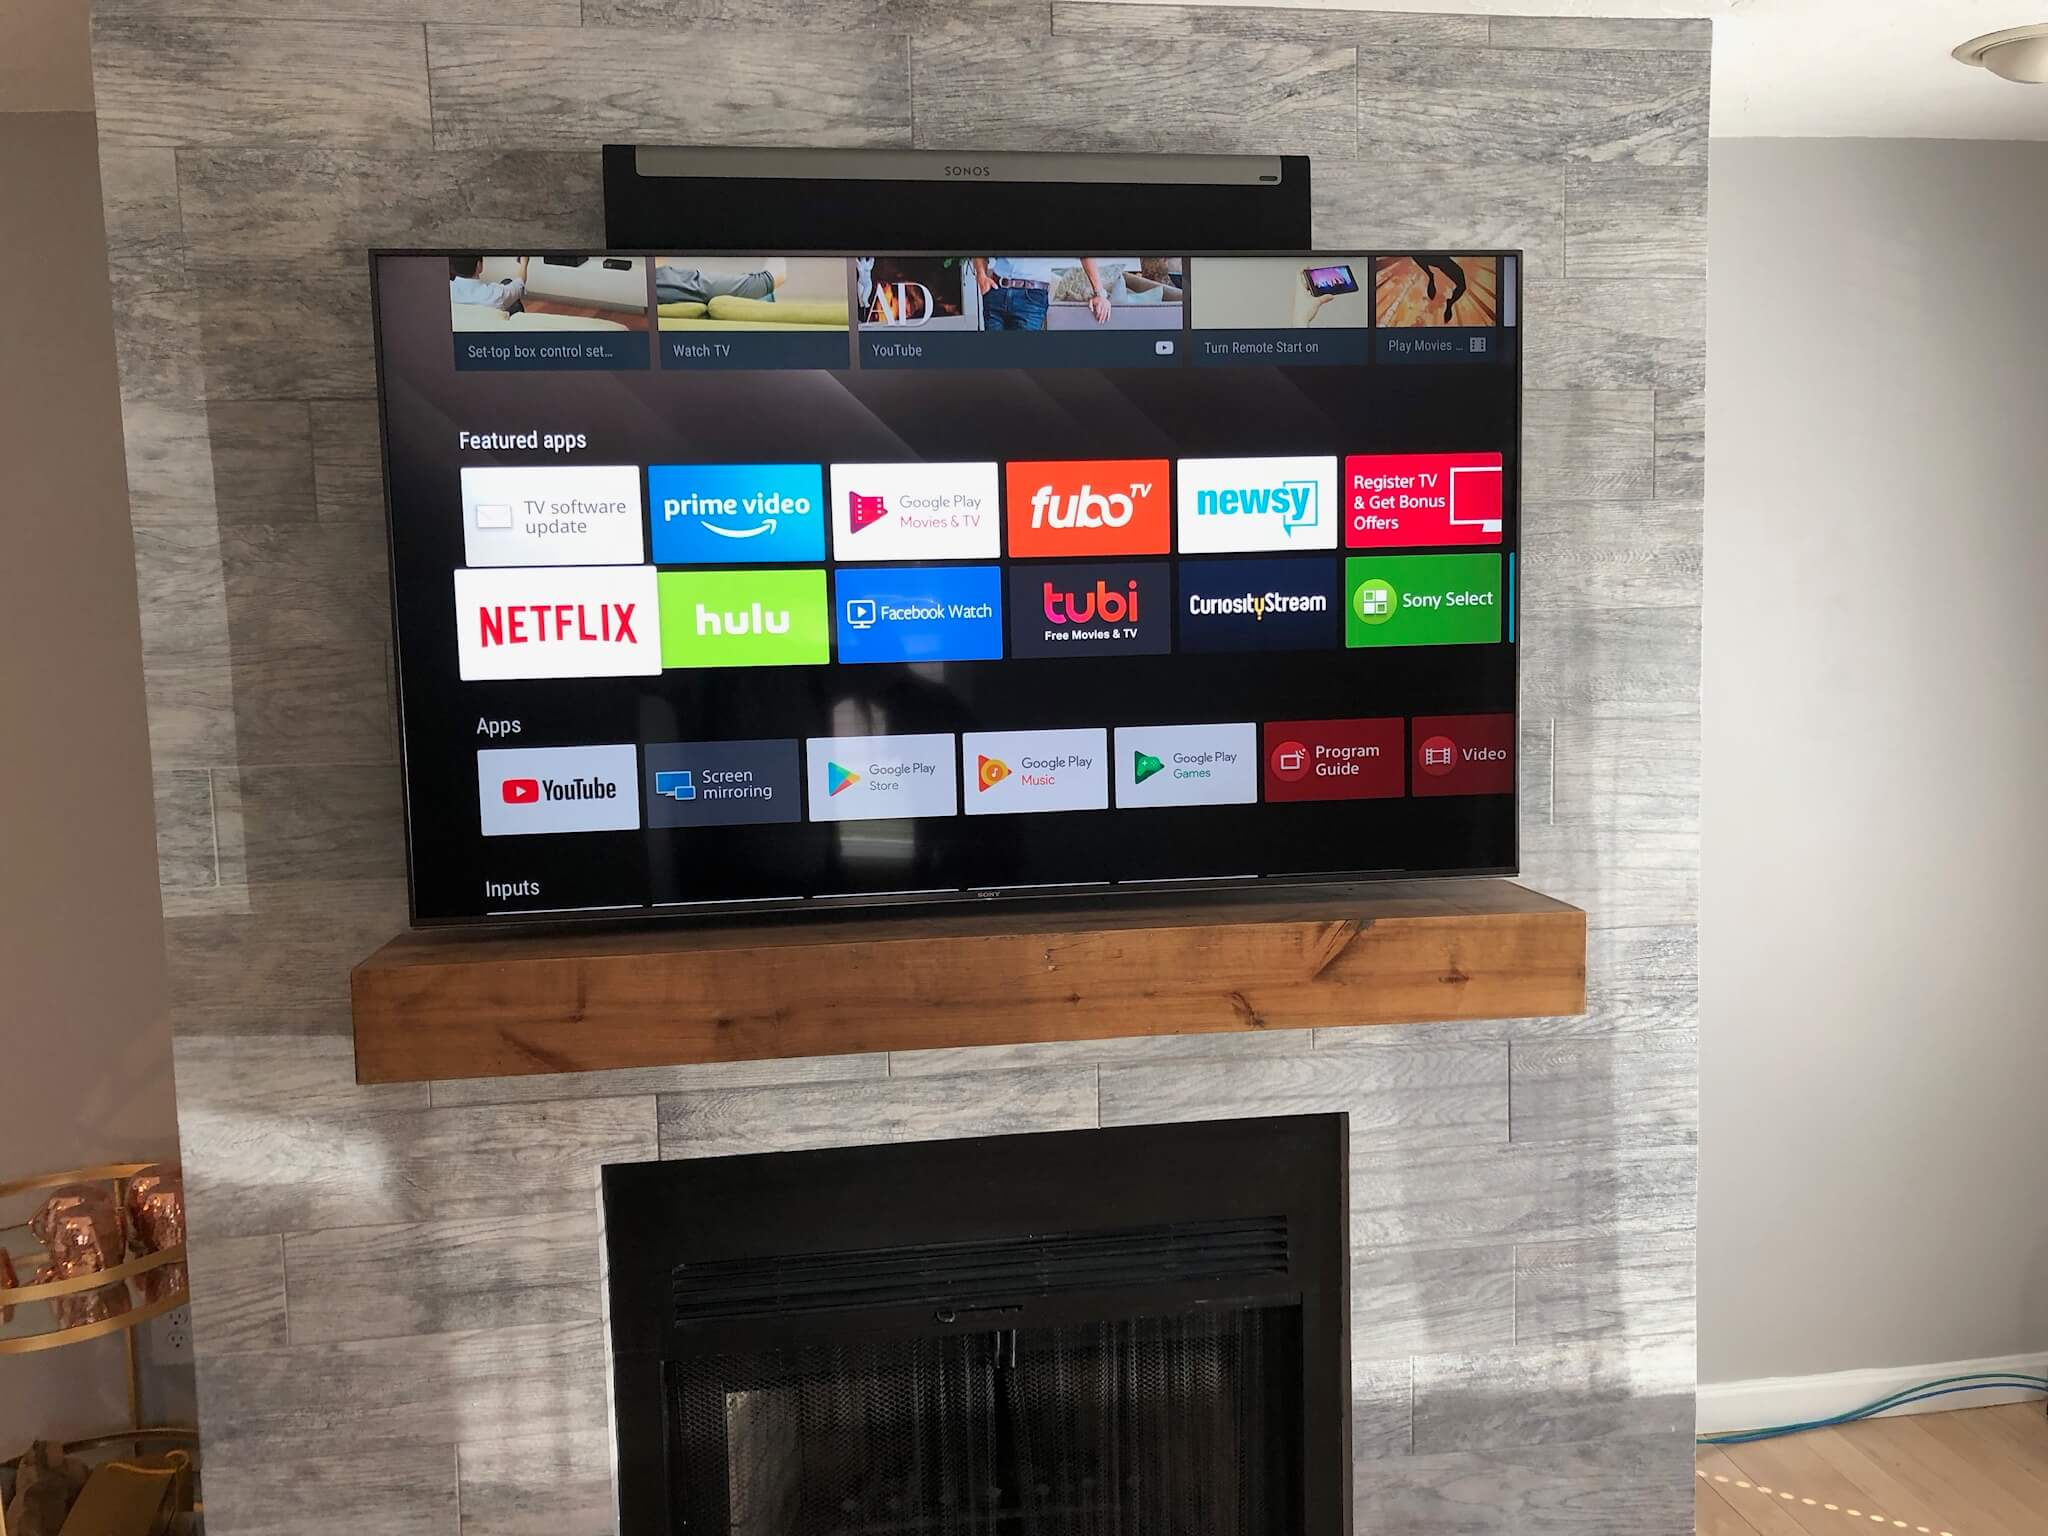 Sony TV on Tile over Fireplace with Sonos PlayBar – South